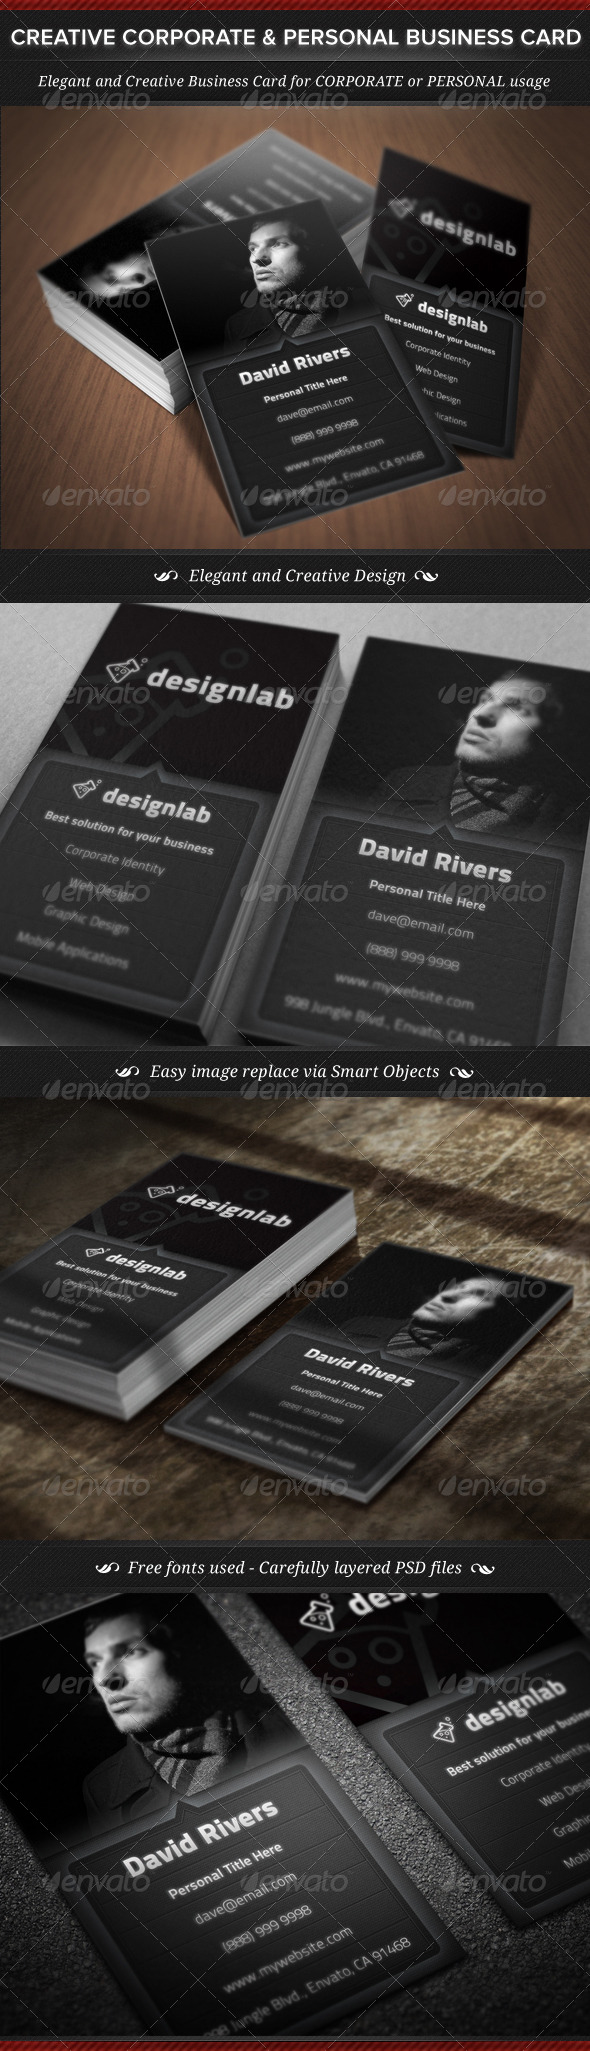 GraphicRiver Creative Corporate & Personal Business Card 5716665